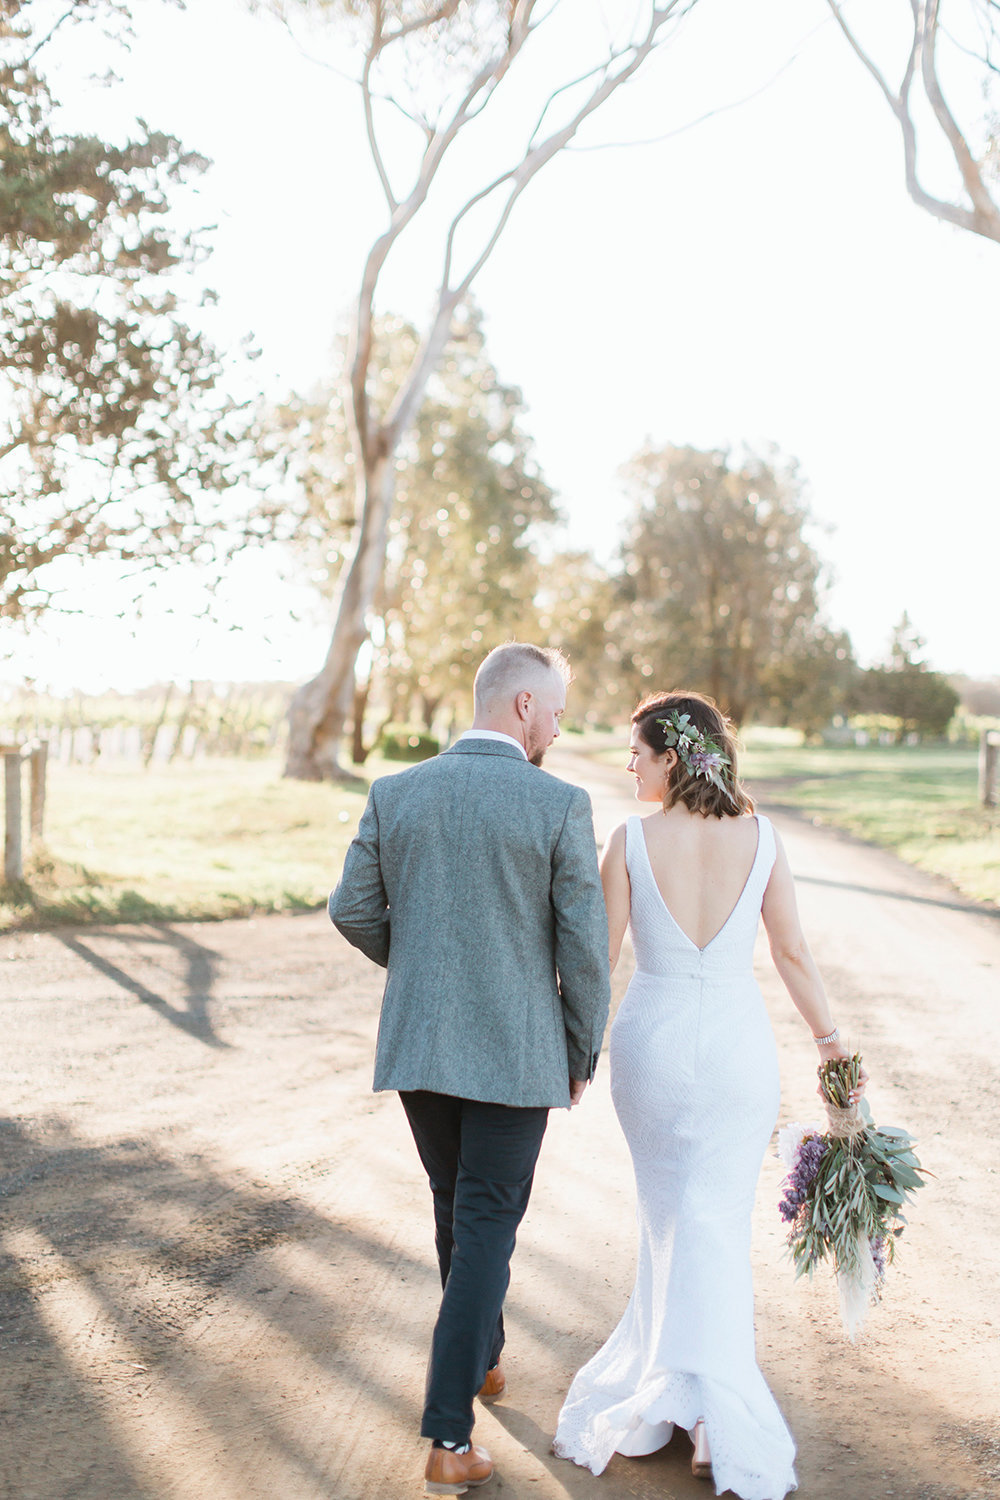 Geelong Wedding Photographer Monika Berry